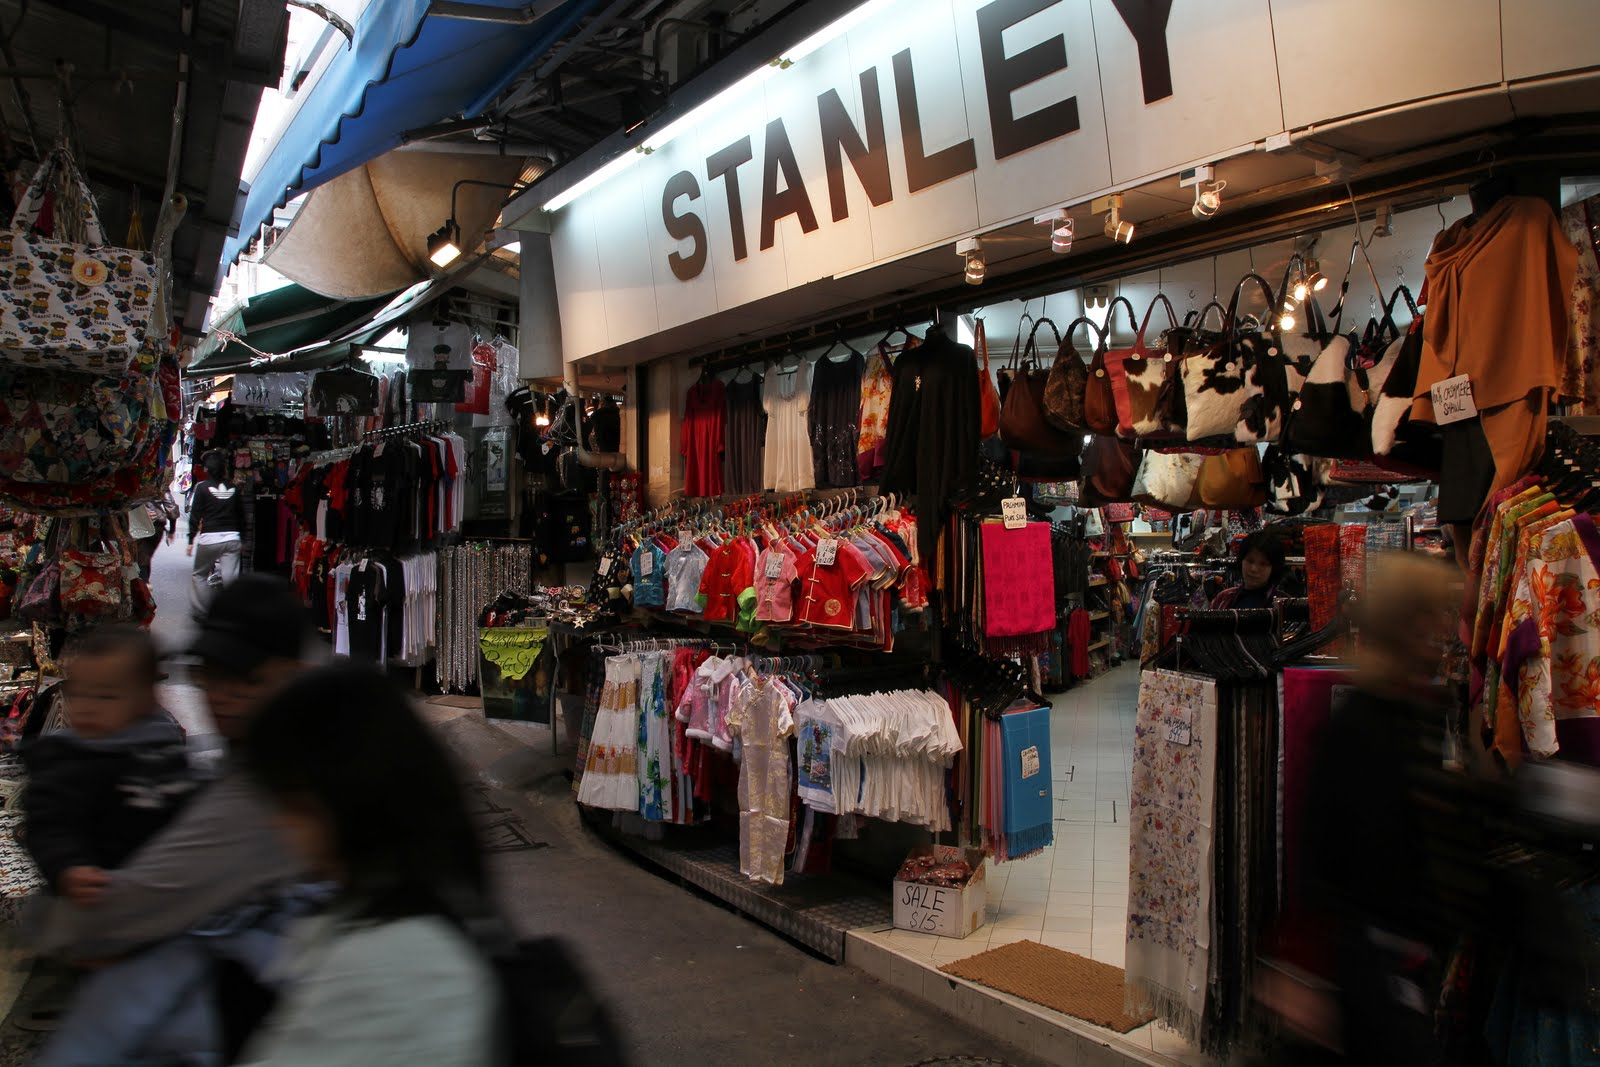 Stanley Market Hong Kong 2011 | Travel And Tourism